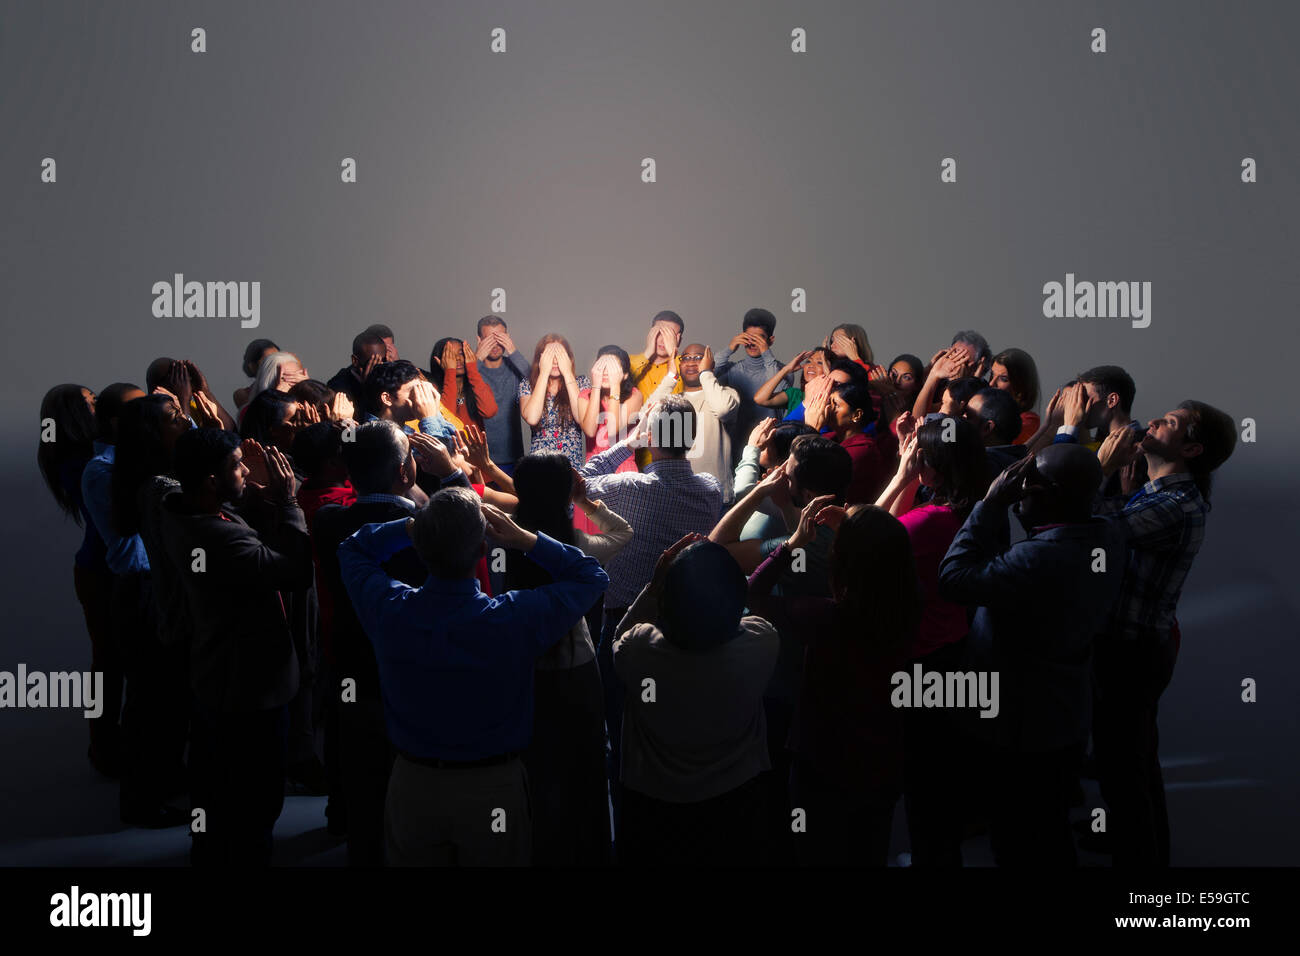 Business people covering eyes around bright light - Stock Image